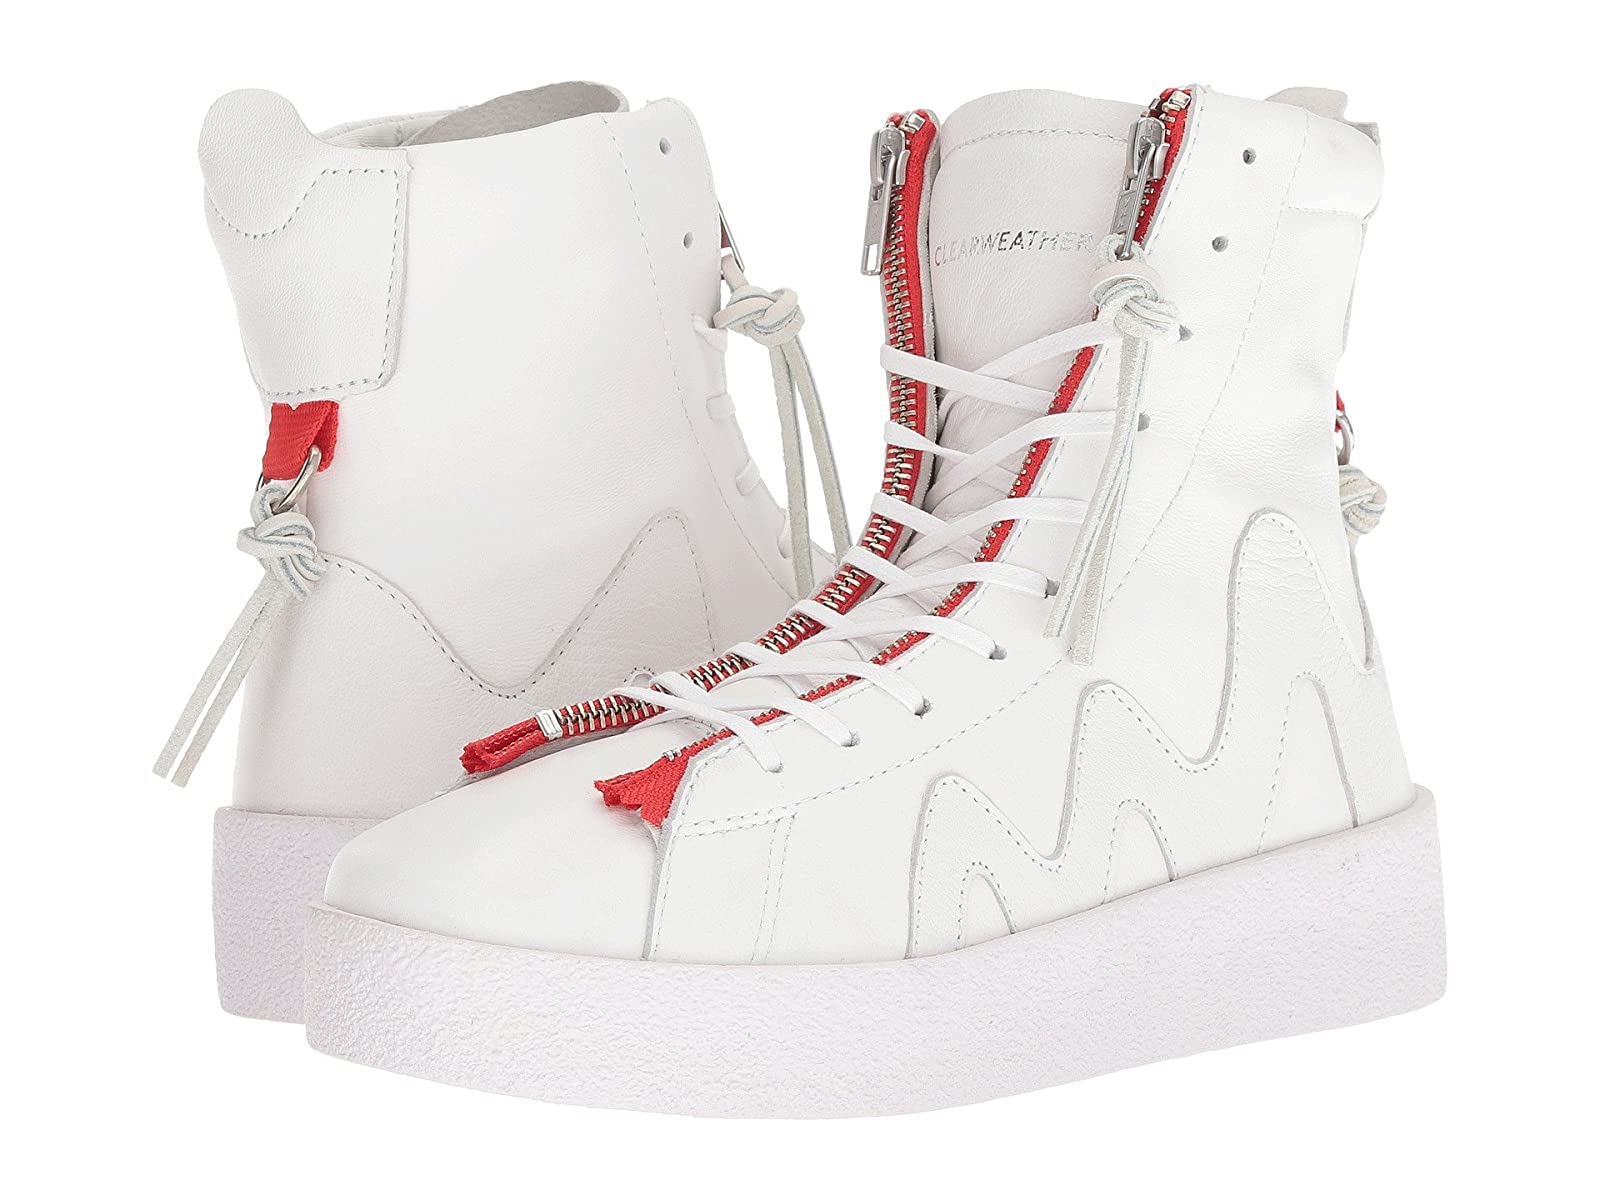 Clear Weather The ClutchAtmospheric grades have affordable shoes